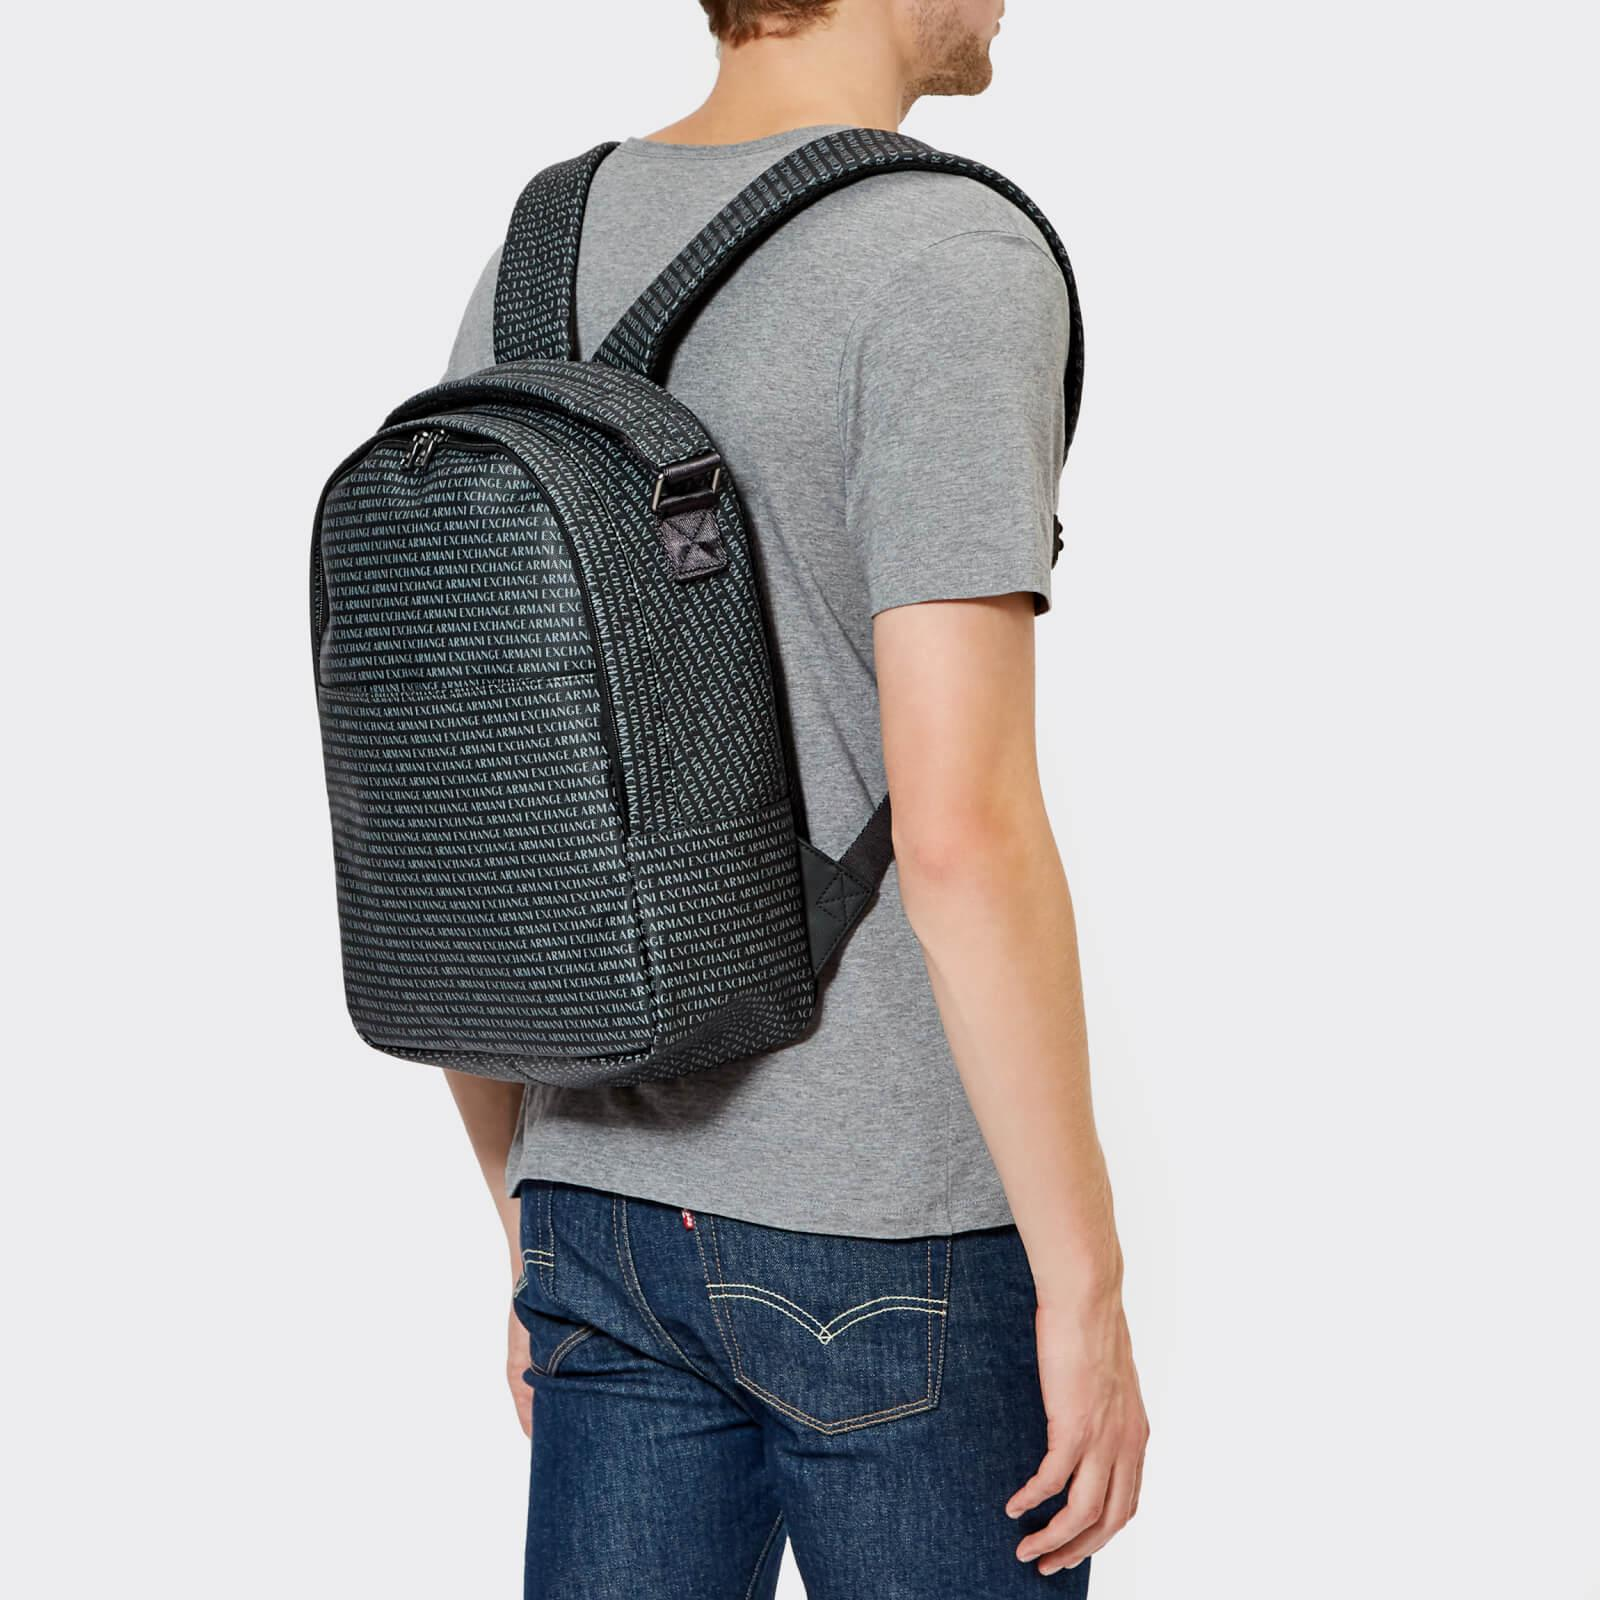 Armani Exchange - Black All Over Print Backpack for Men - Lyst. View  fullscreen 396fa3ff85395